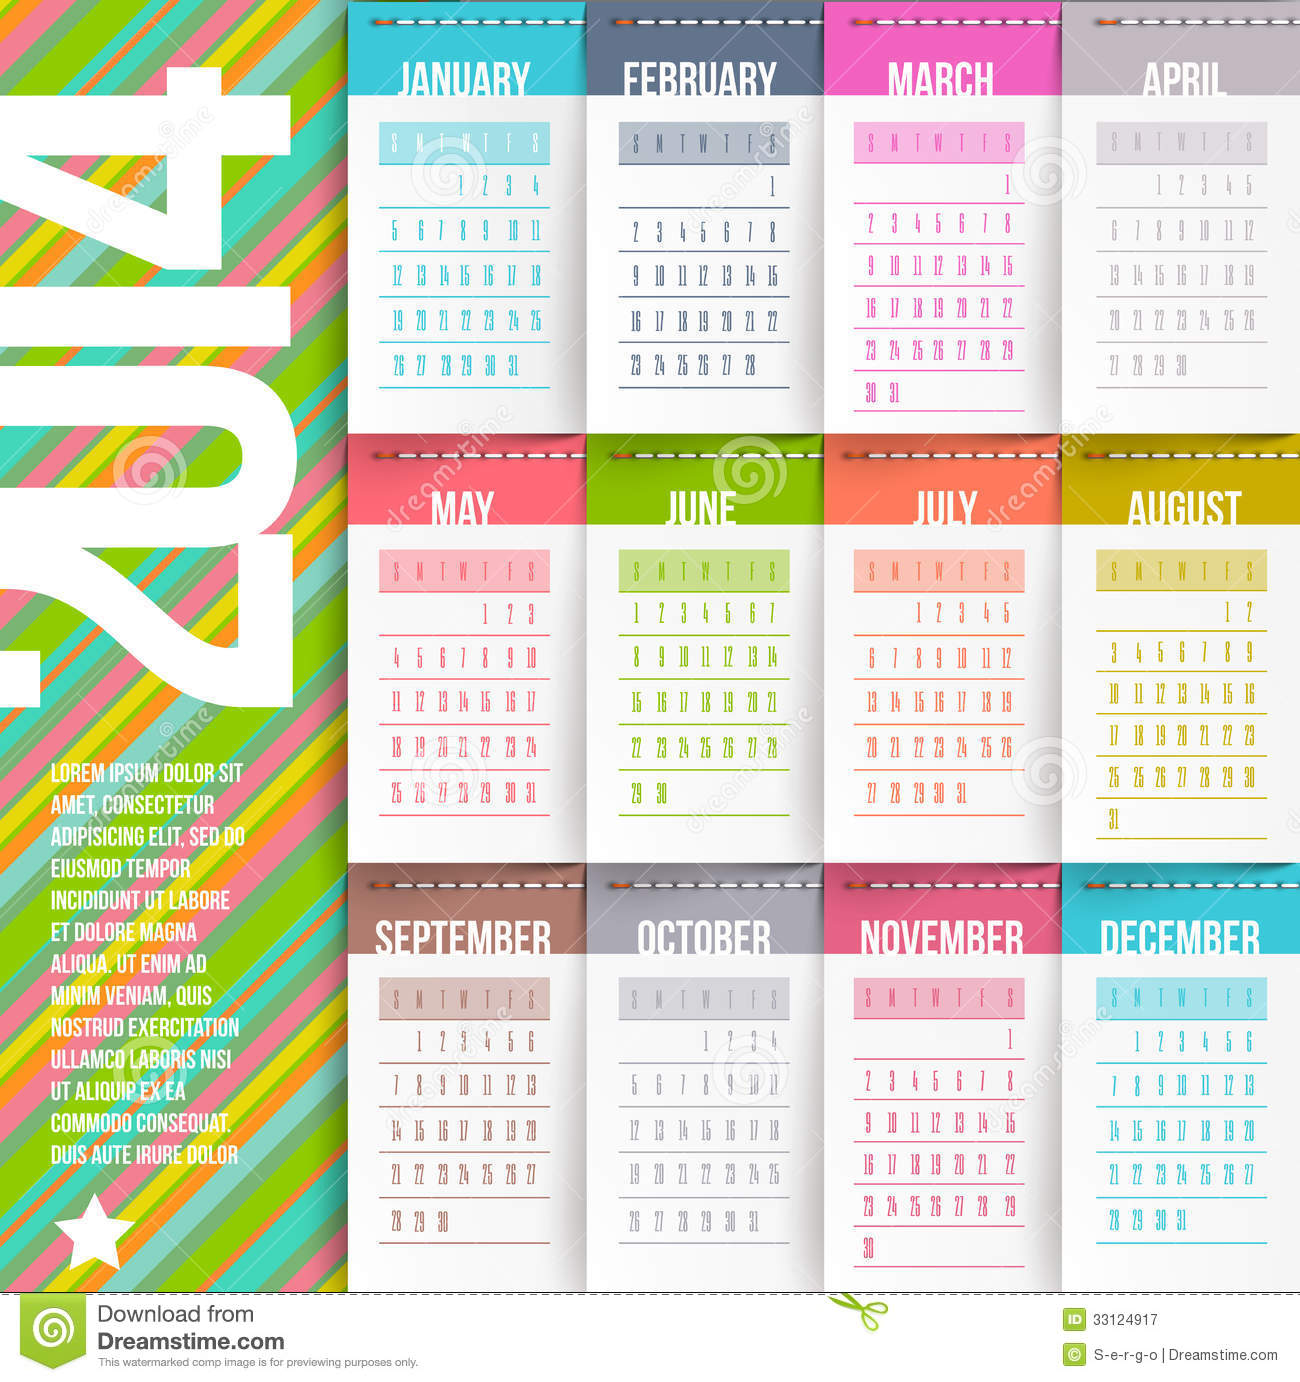 Calendar Of 2014 Year Royalty Free Stock Photography - Image: 33124917